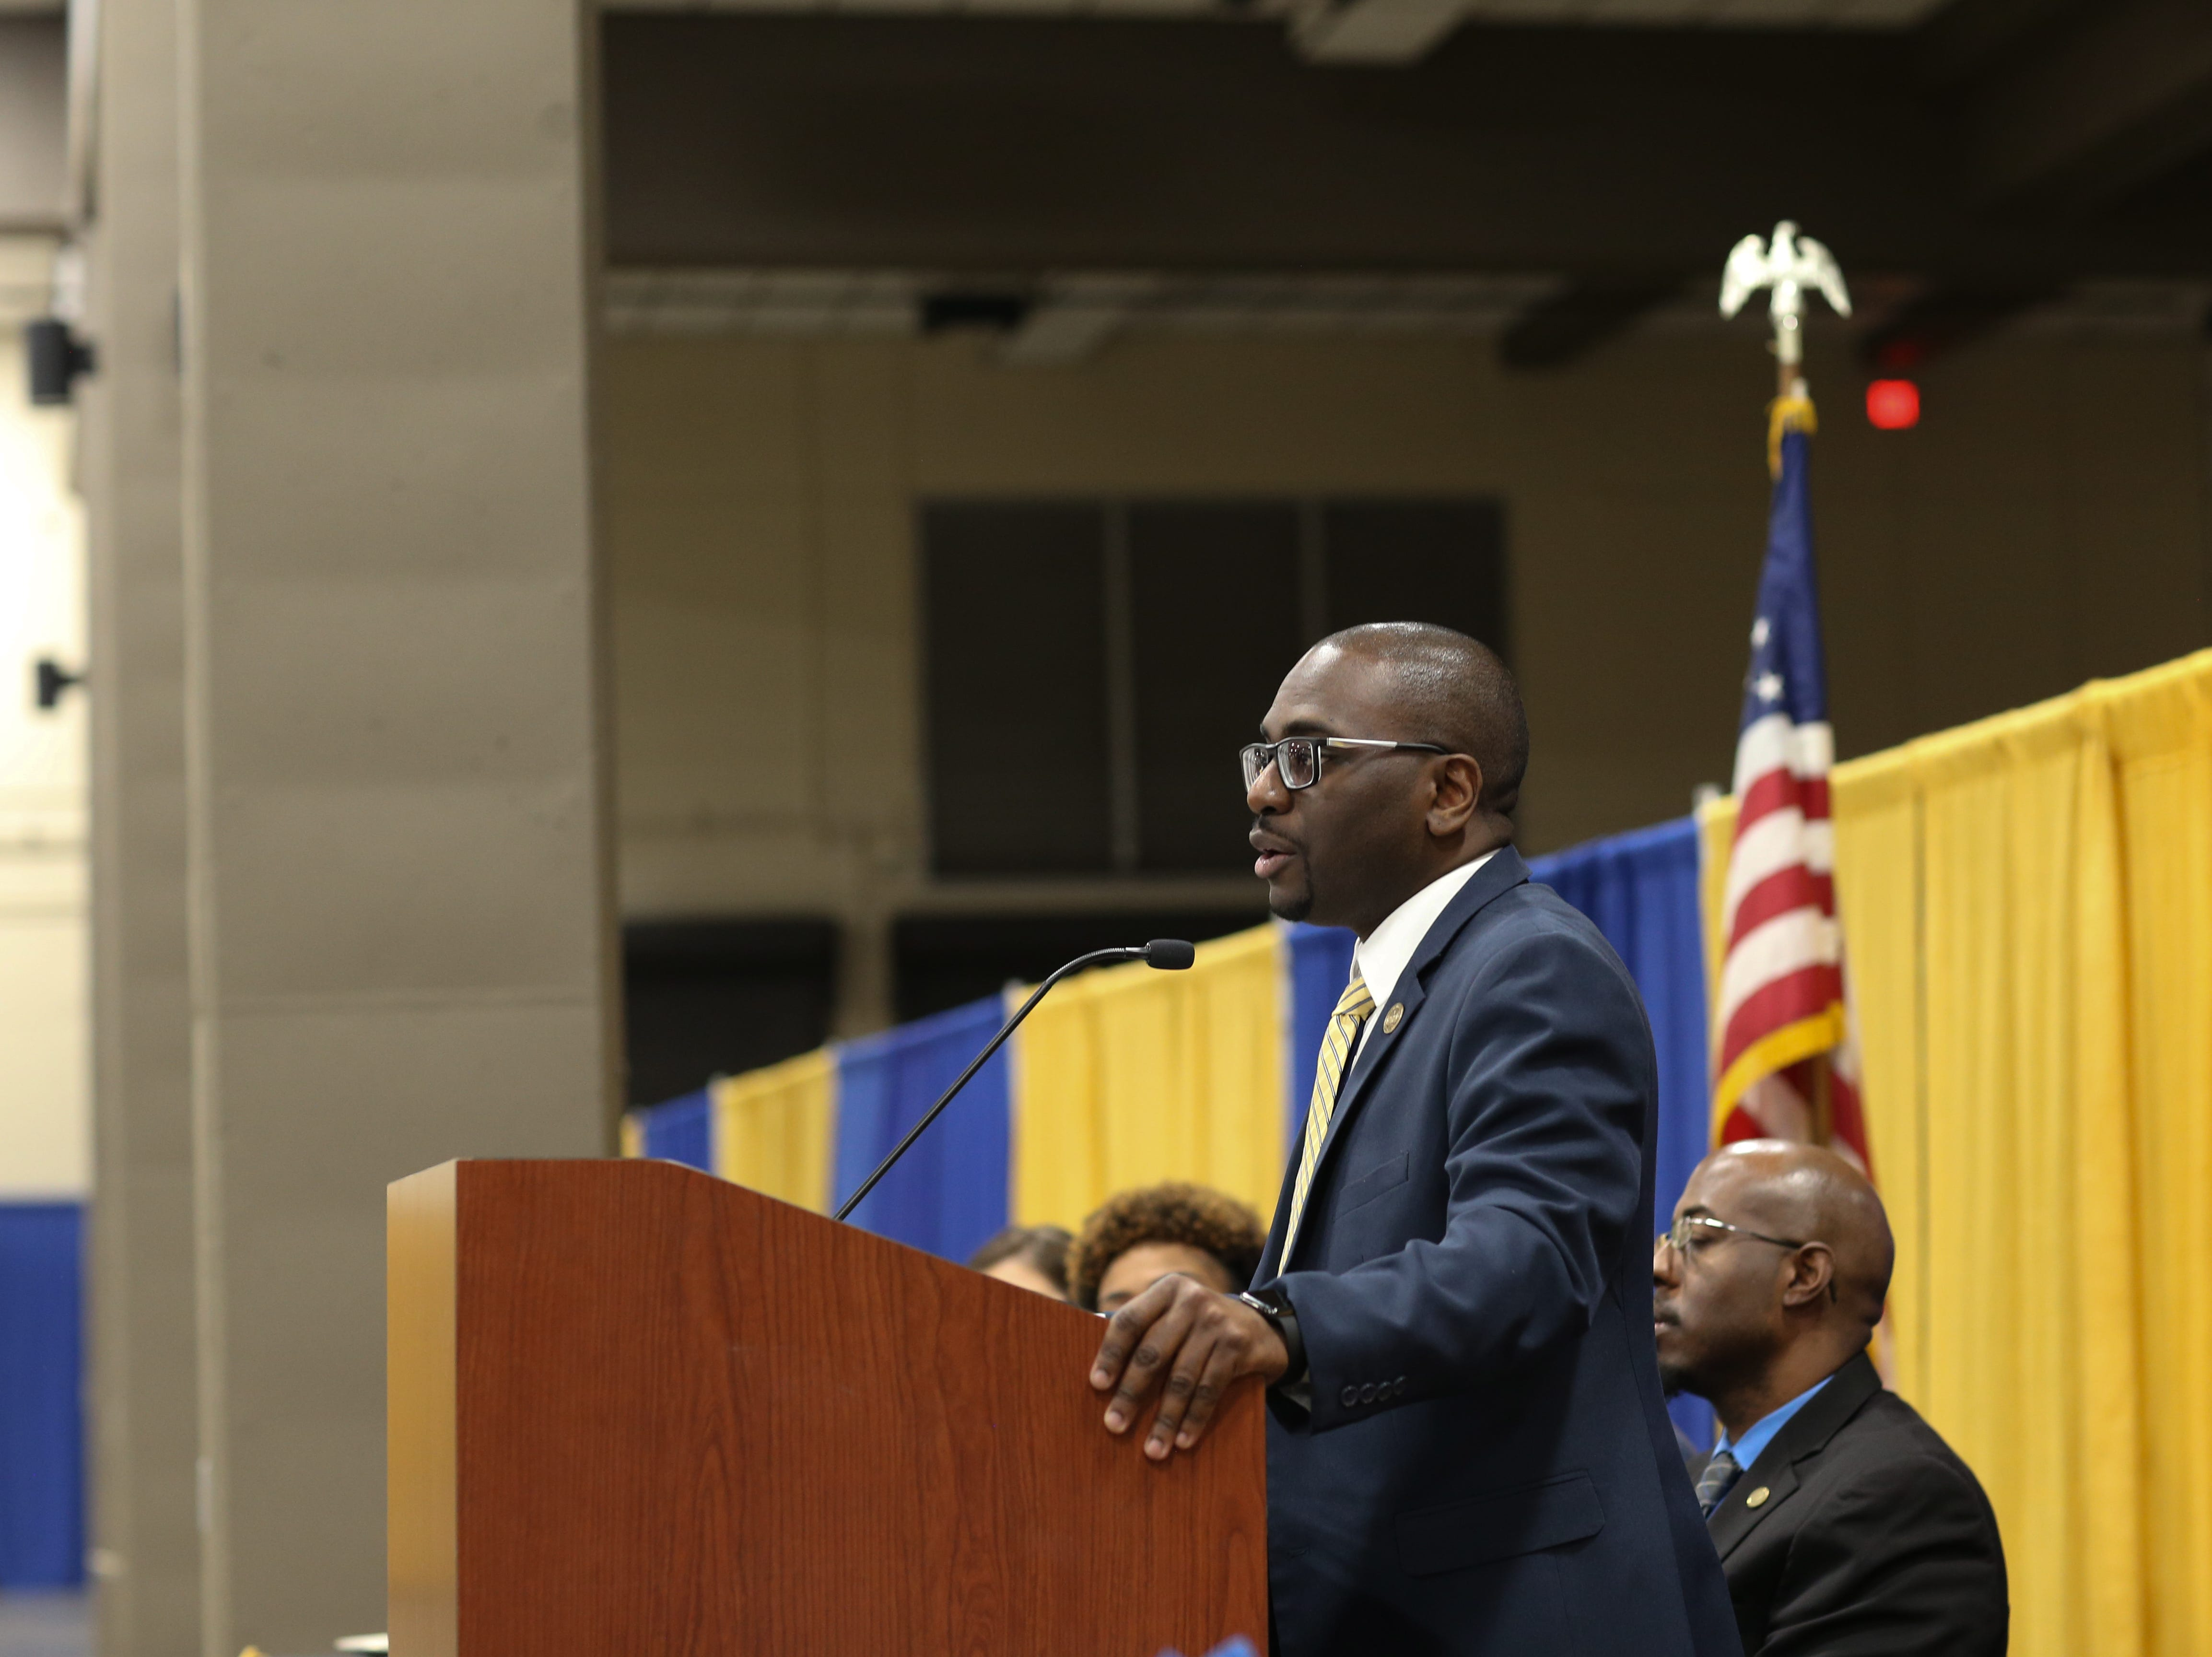 President of the Tallahassee branch of the NAACP Adner Marcelin gives closing remarks during the Martin Luther King Jr. commemorative breakfast at Donald L. Tucker Civic Center Friday, Jan. 18, 2019.